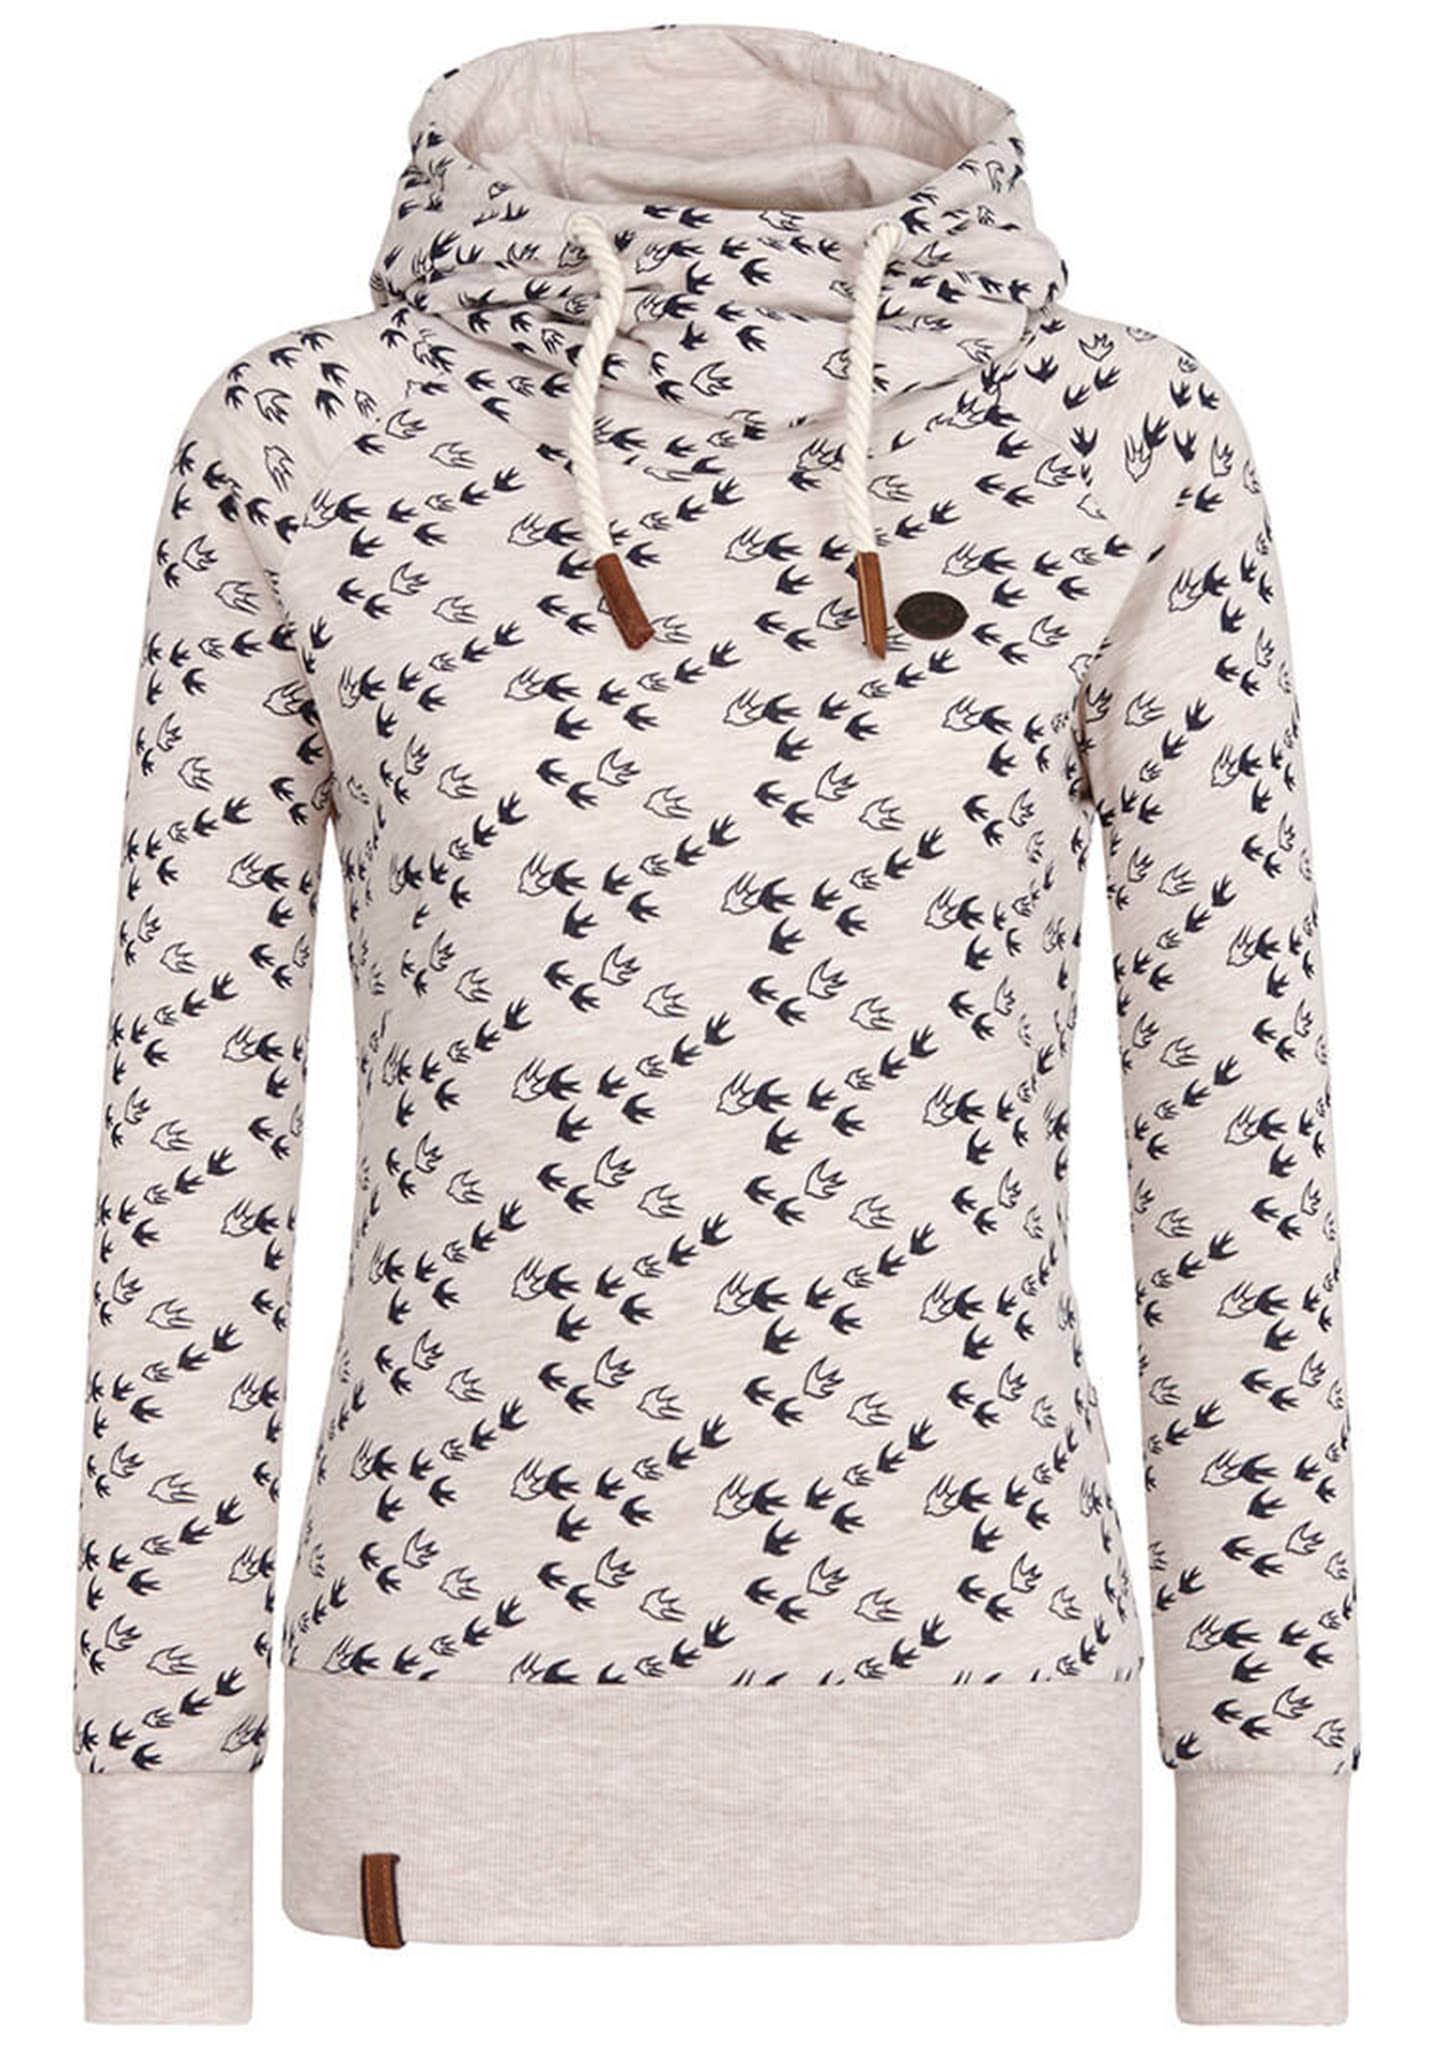 NAKETANO Mandy Will Vögel(n) II | Pullover shirt